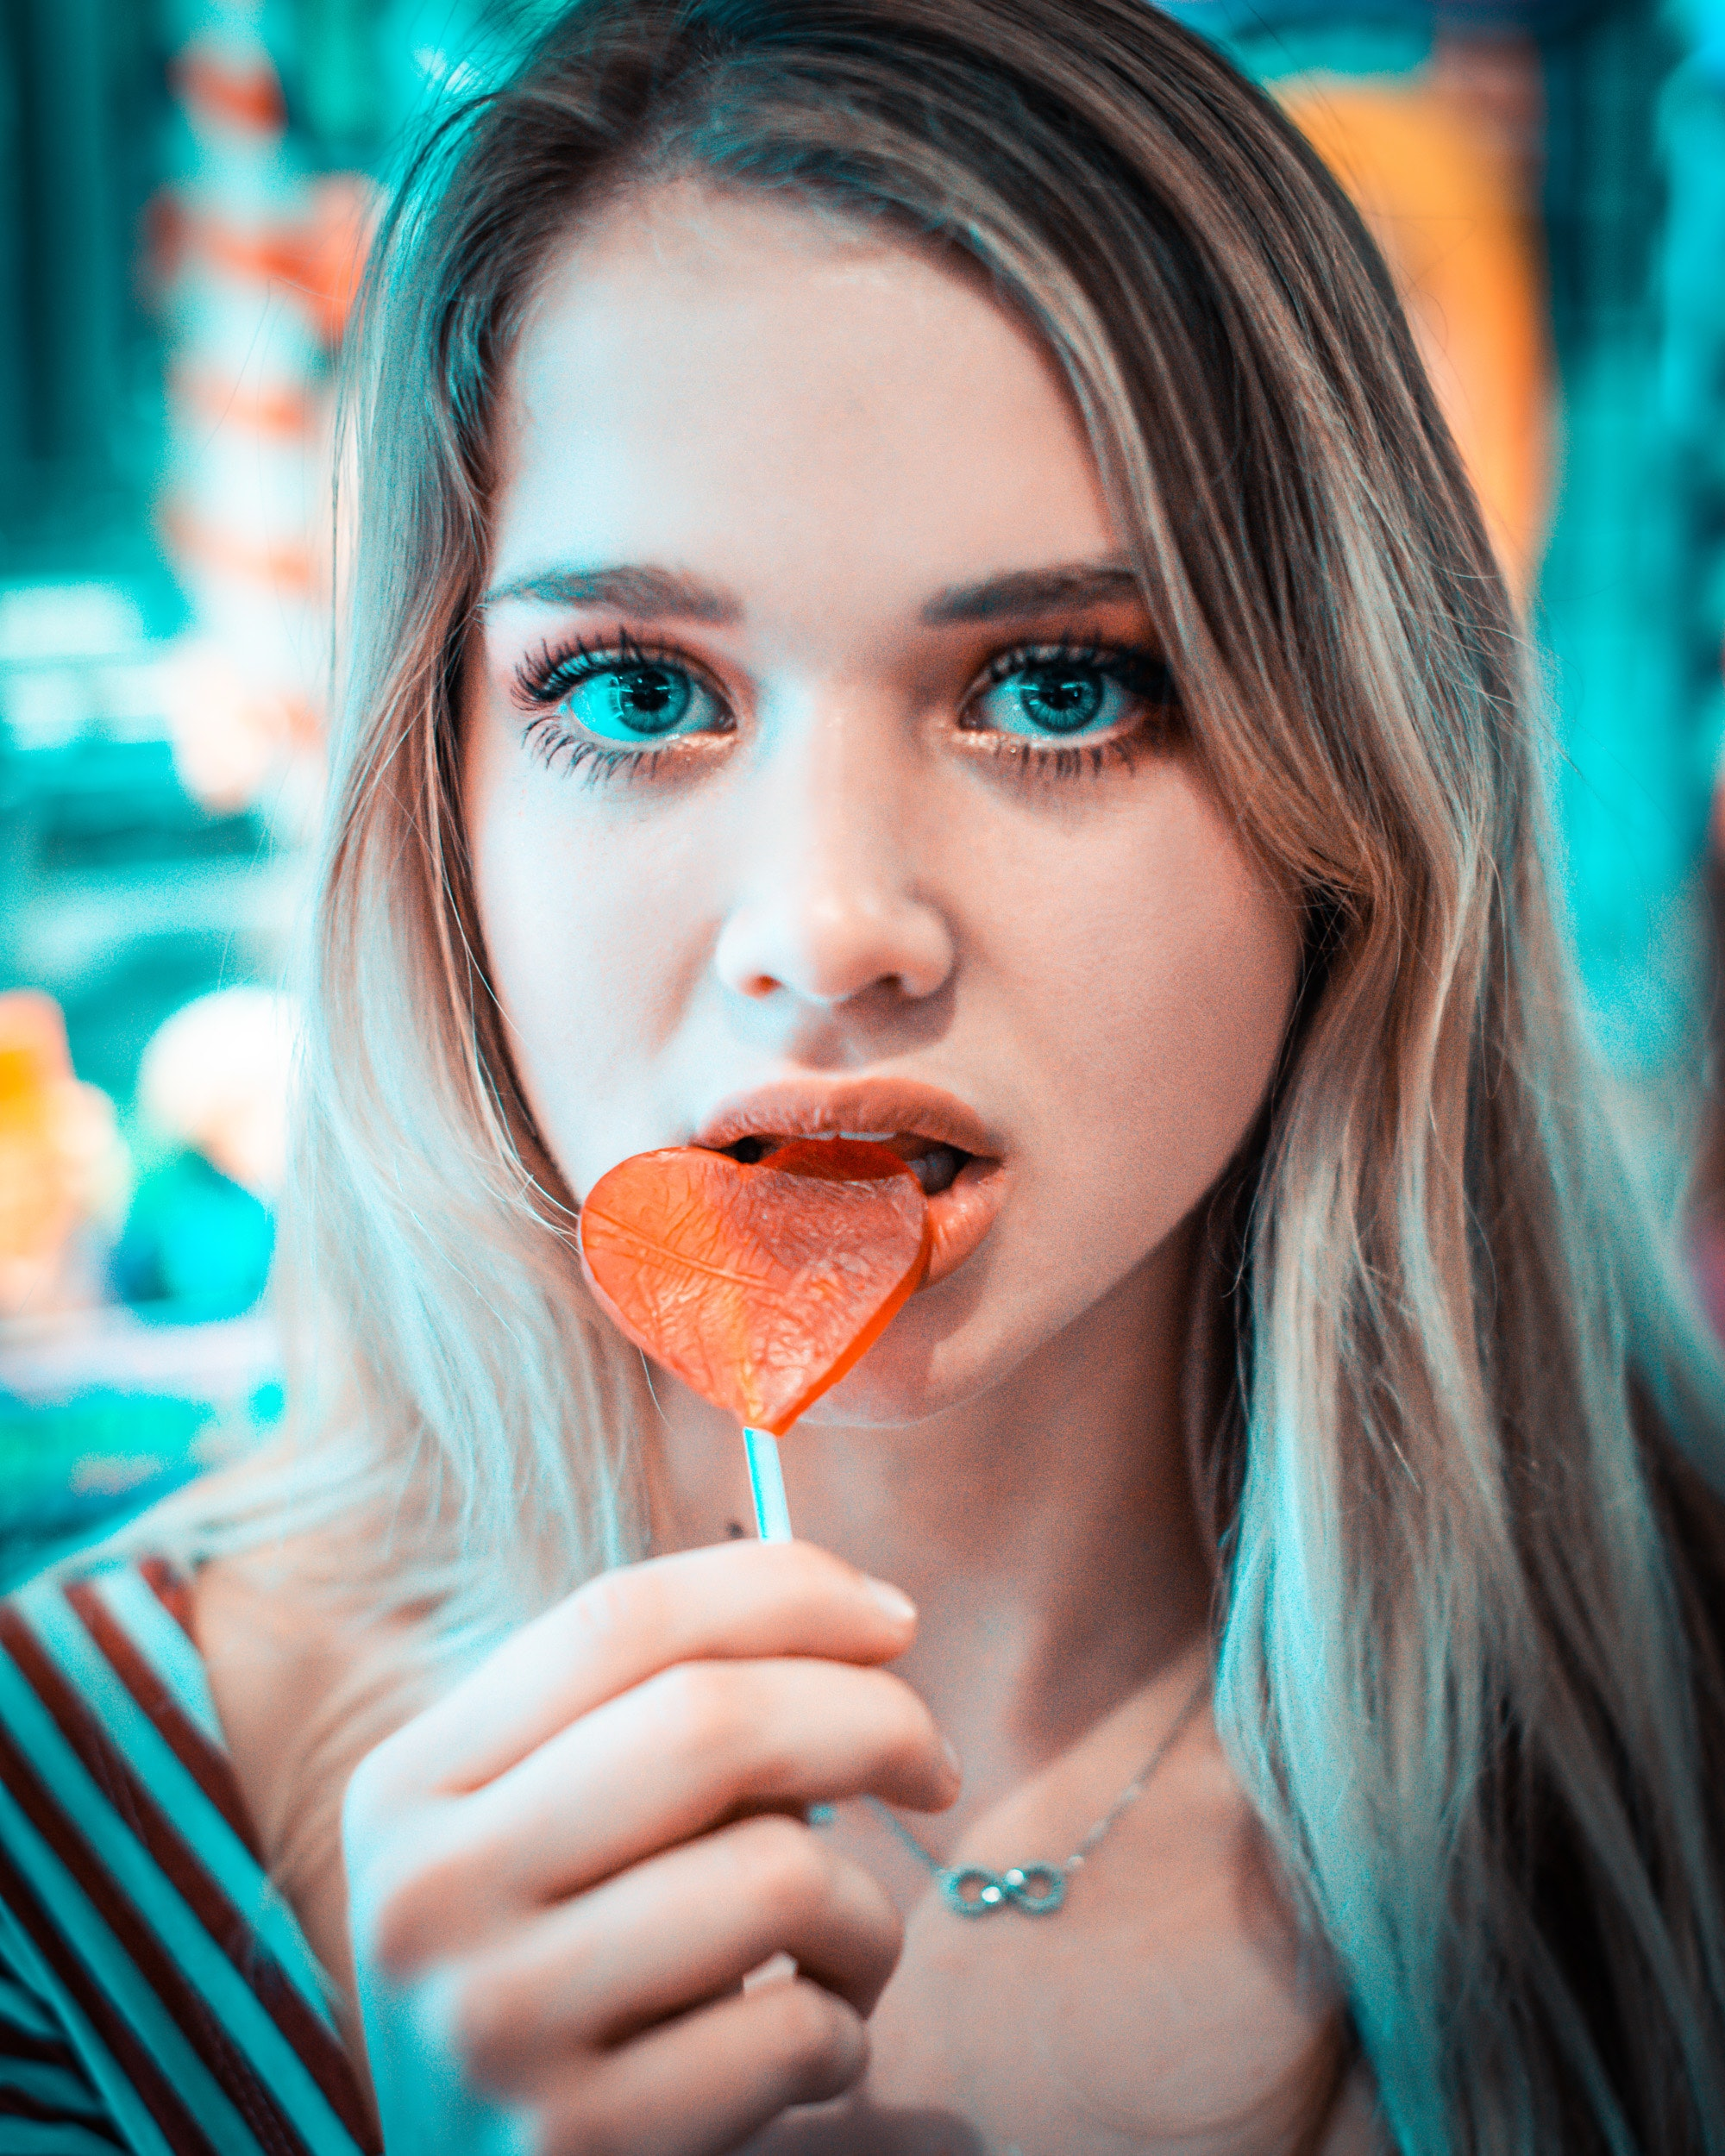 Eating Emotions or Meeting Them?